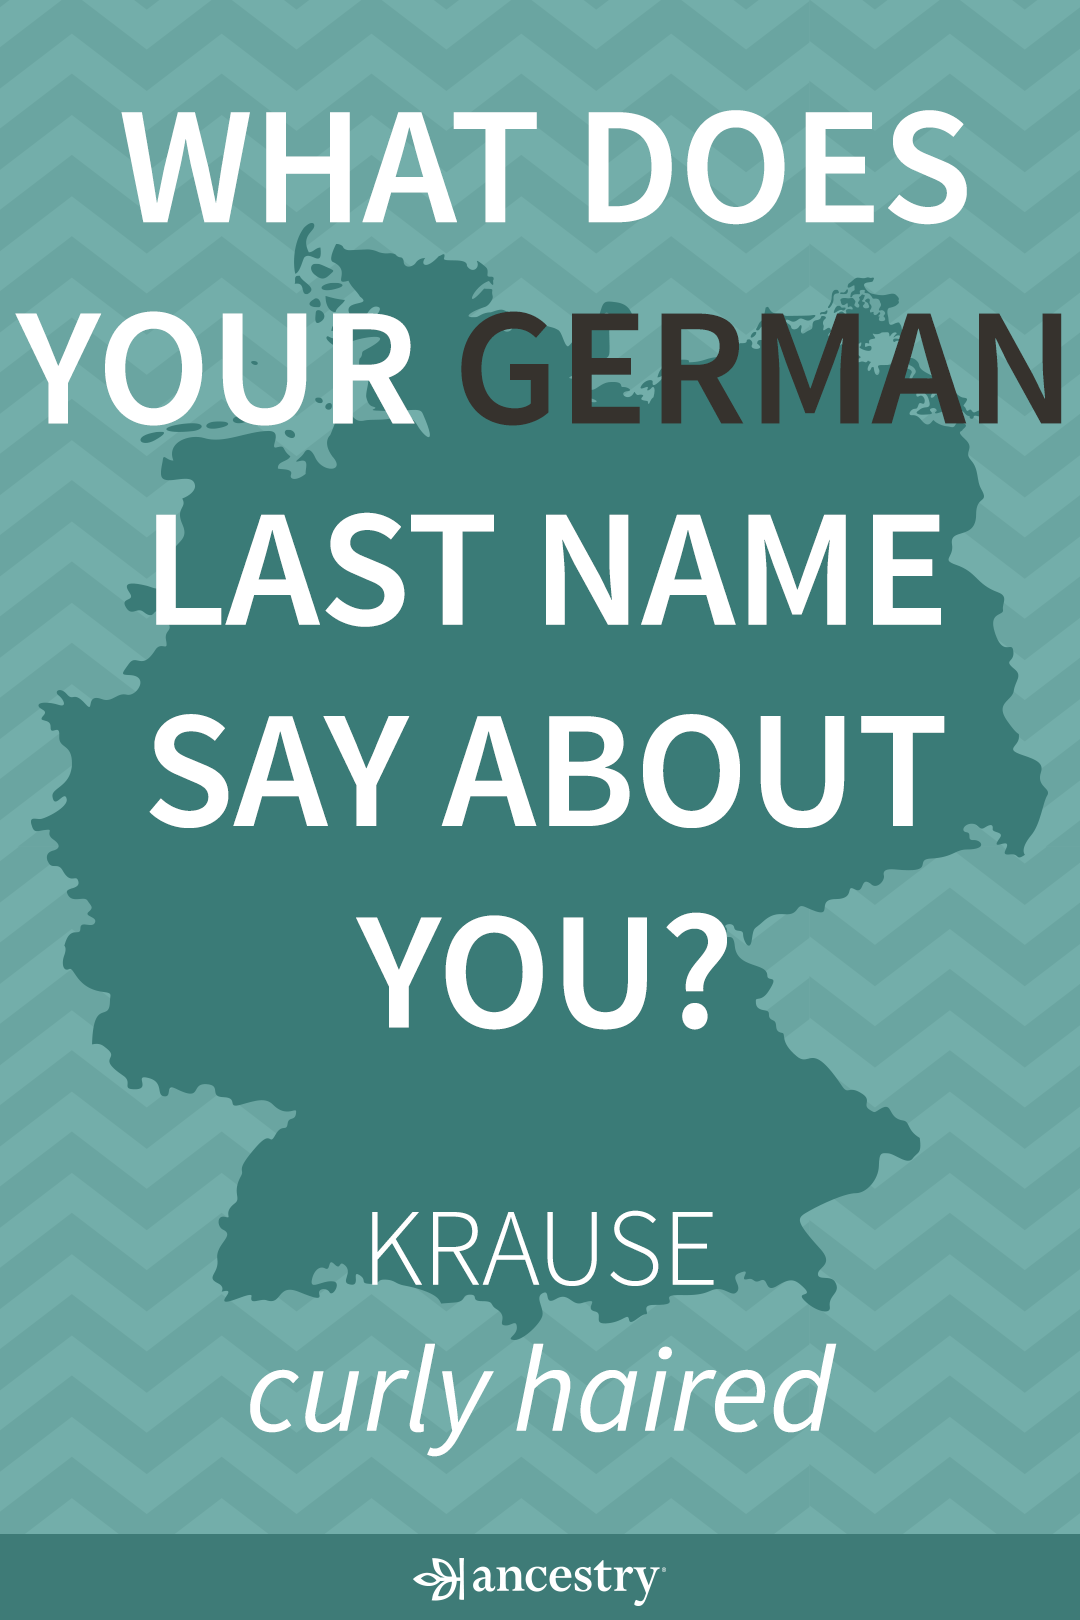 What Does Your German Last Name Say About You Enter Your Last Name To Find Its Meaning And Origin German Last Names Sayings German